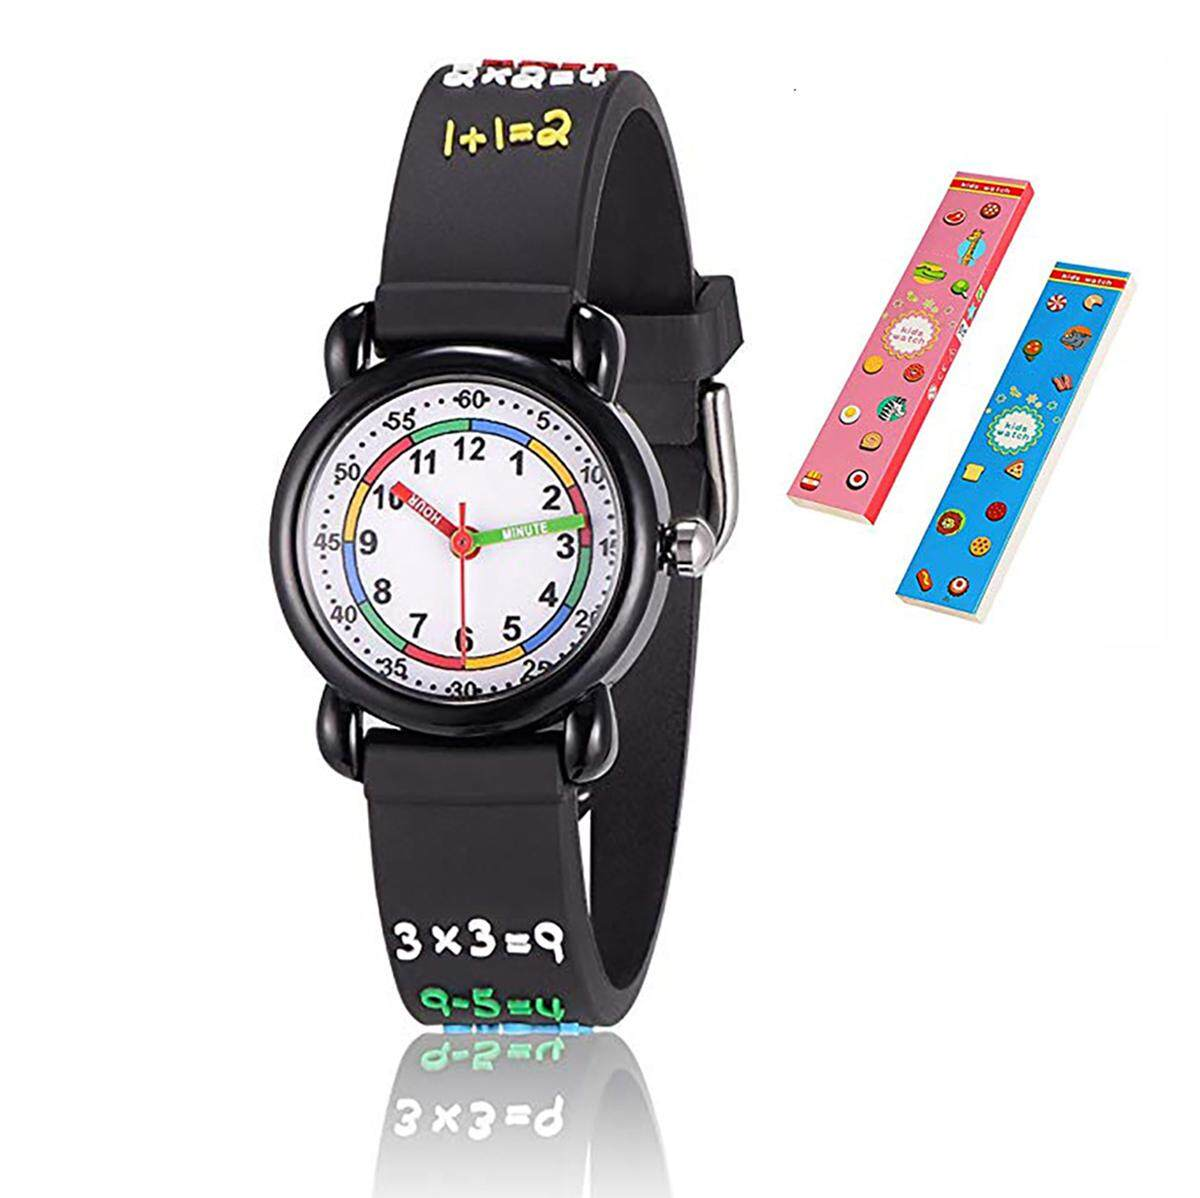 Toddler Kids Watch Alphabet/Mathematics Gifts for 3-10 Years Old 3D Cute Cartoon Wrist Watches Gift for Toddler Girls Boys Malaysia